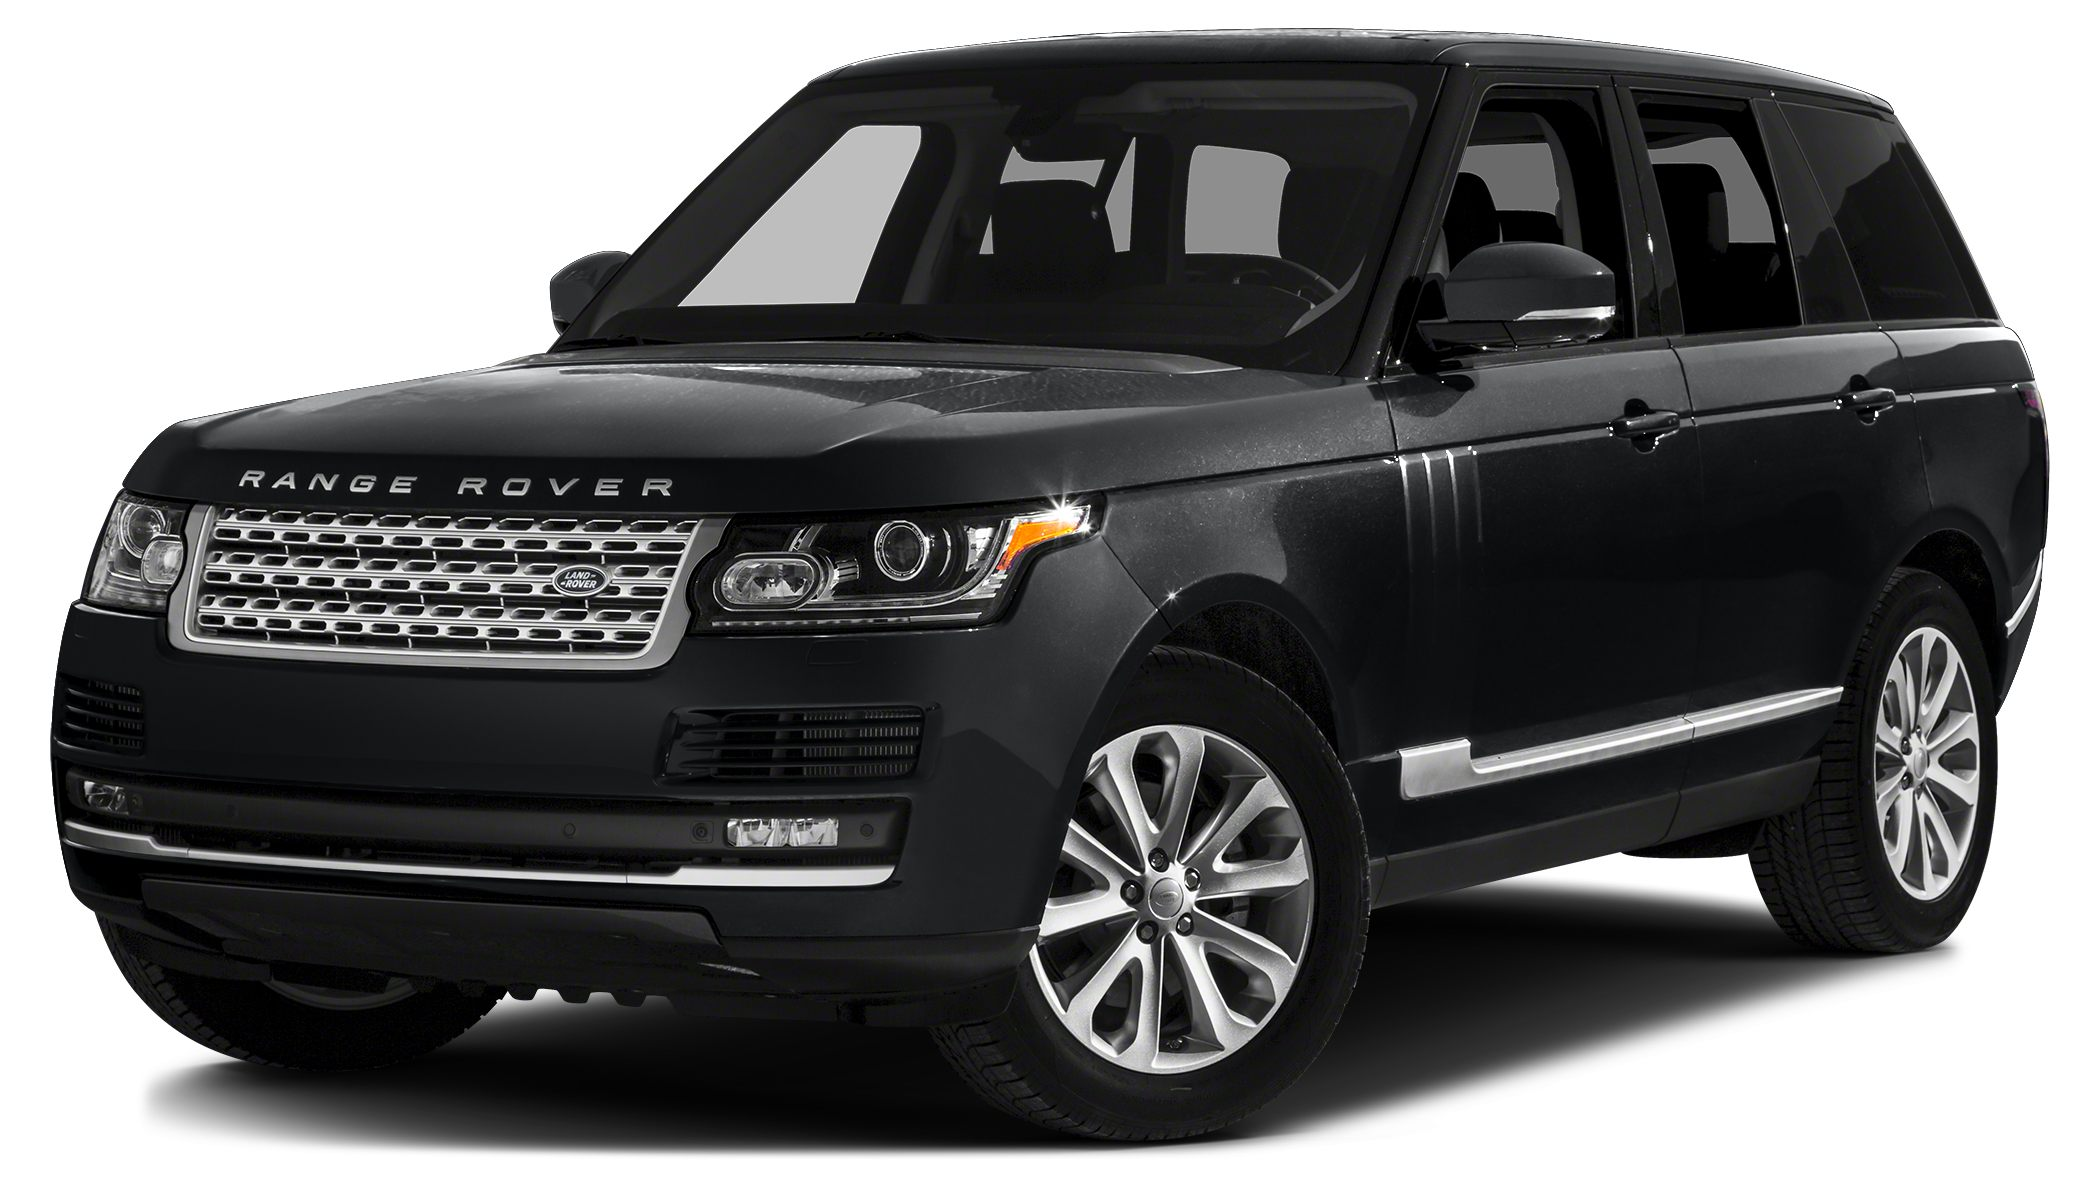 2014 Land Rover Range Rover 30 Supercharged HSE Miles 54364Color Santorini Black Metallic Stoc